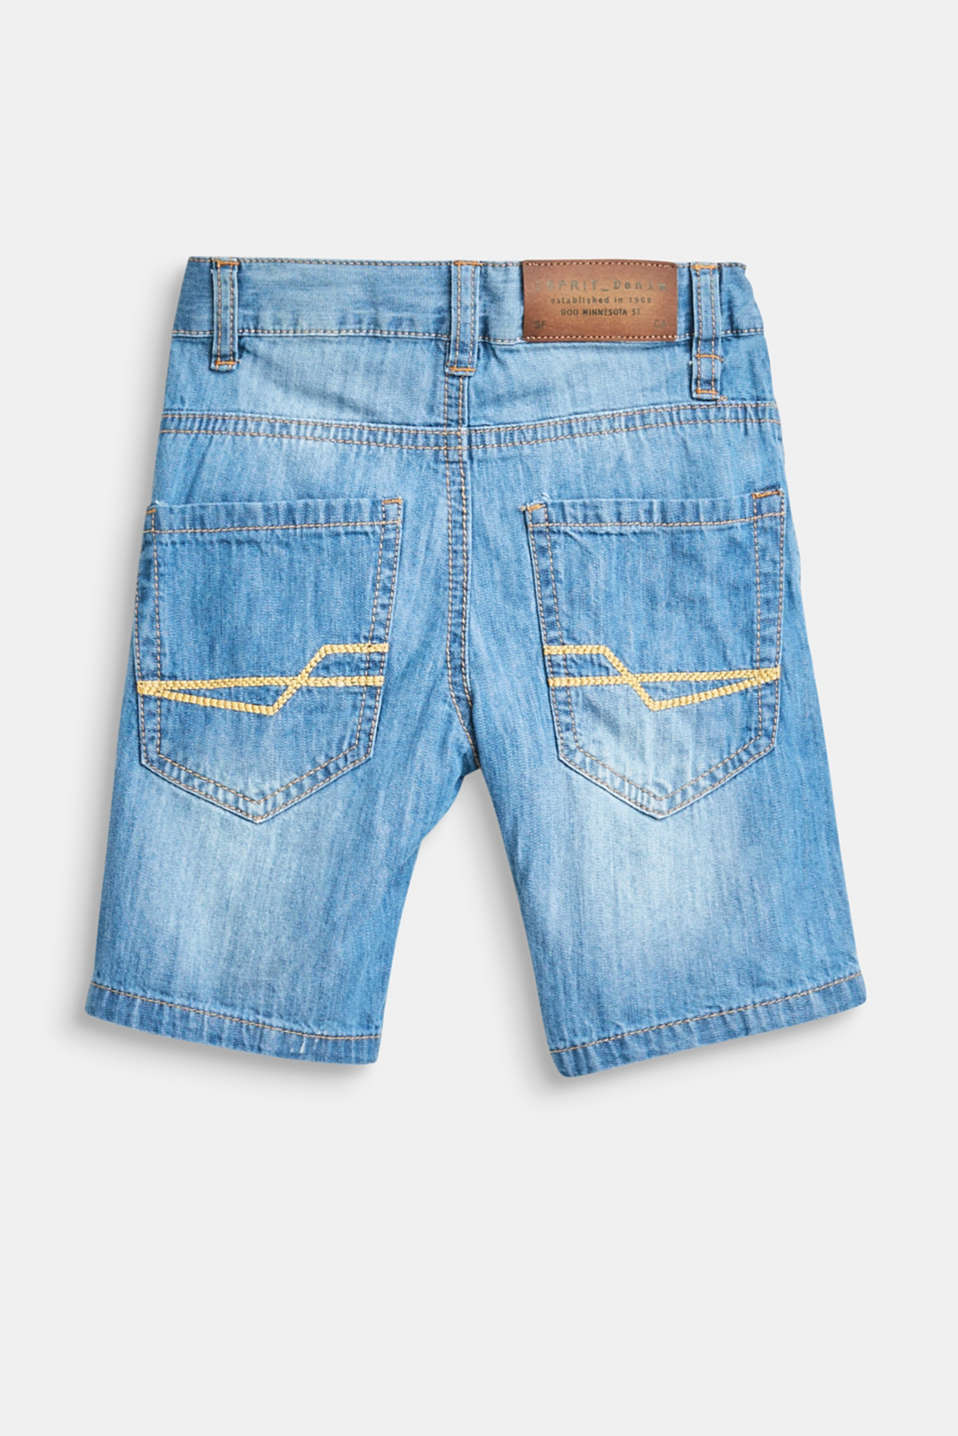 Denim shorts with an adjustable waistband, 100% cotton